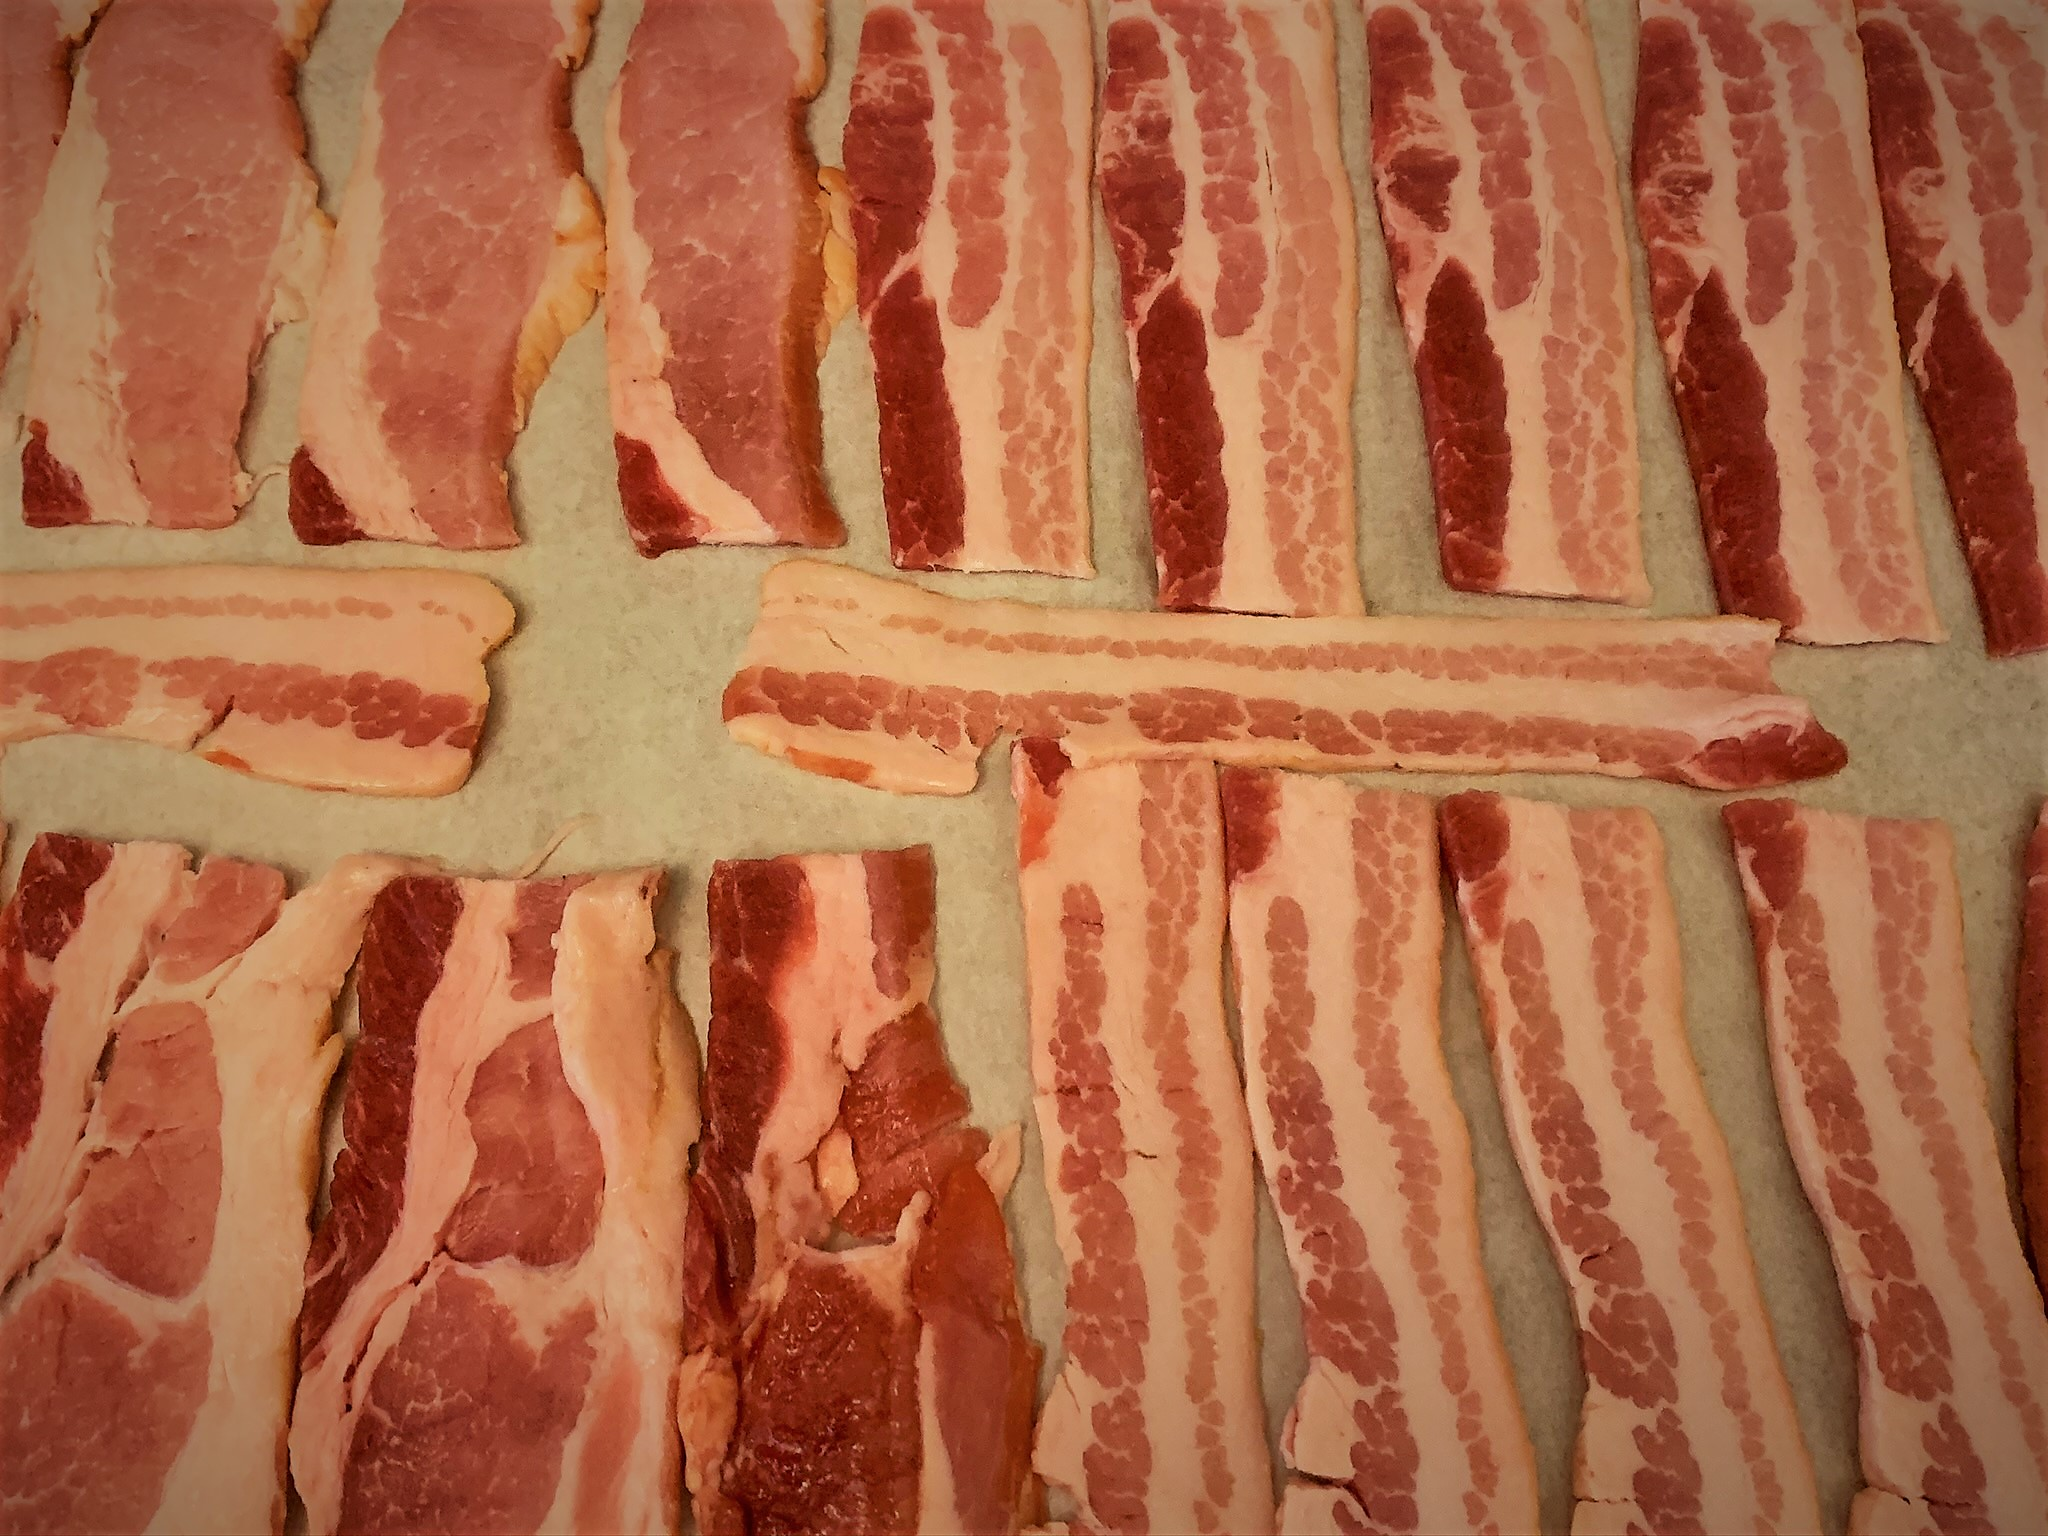 Our Bacon laid out and ready to be cooked in the oven